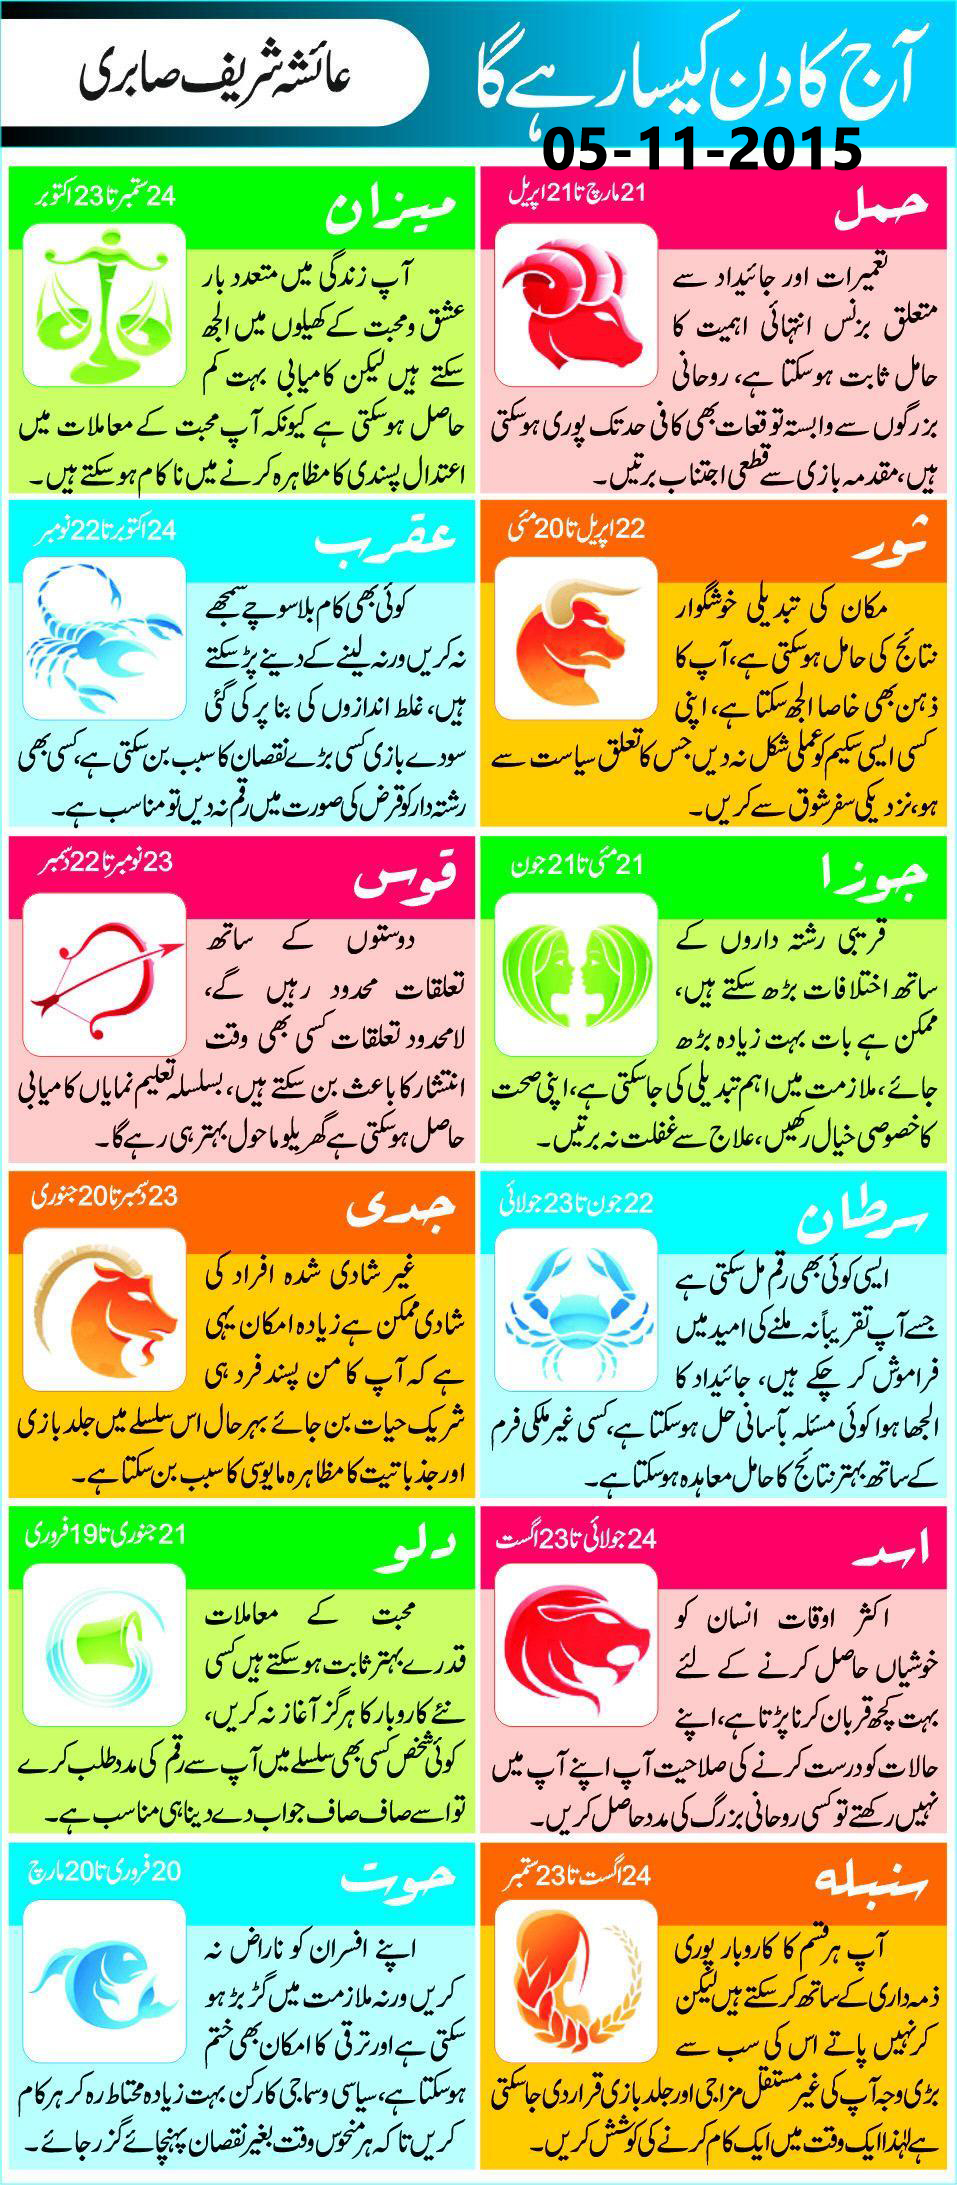 Daily Horoscope in Urdu Today 05 Nov 2015